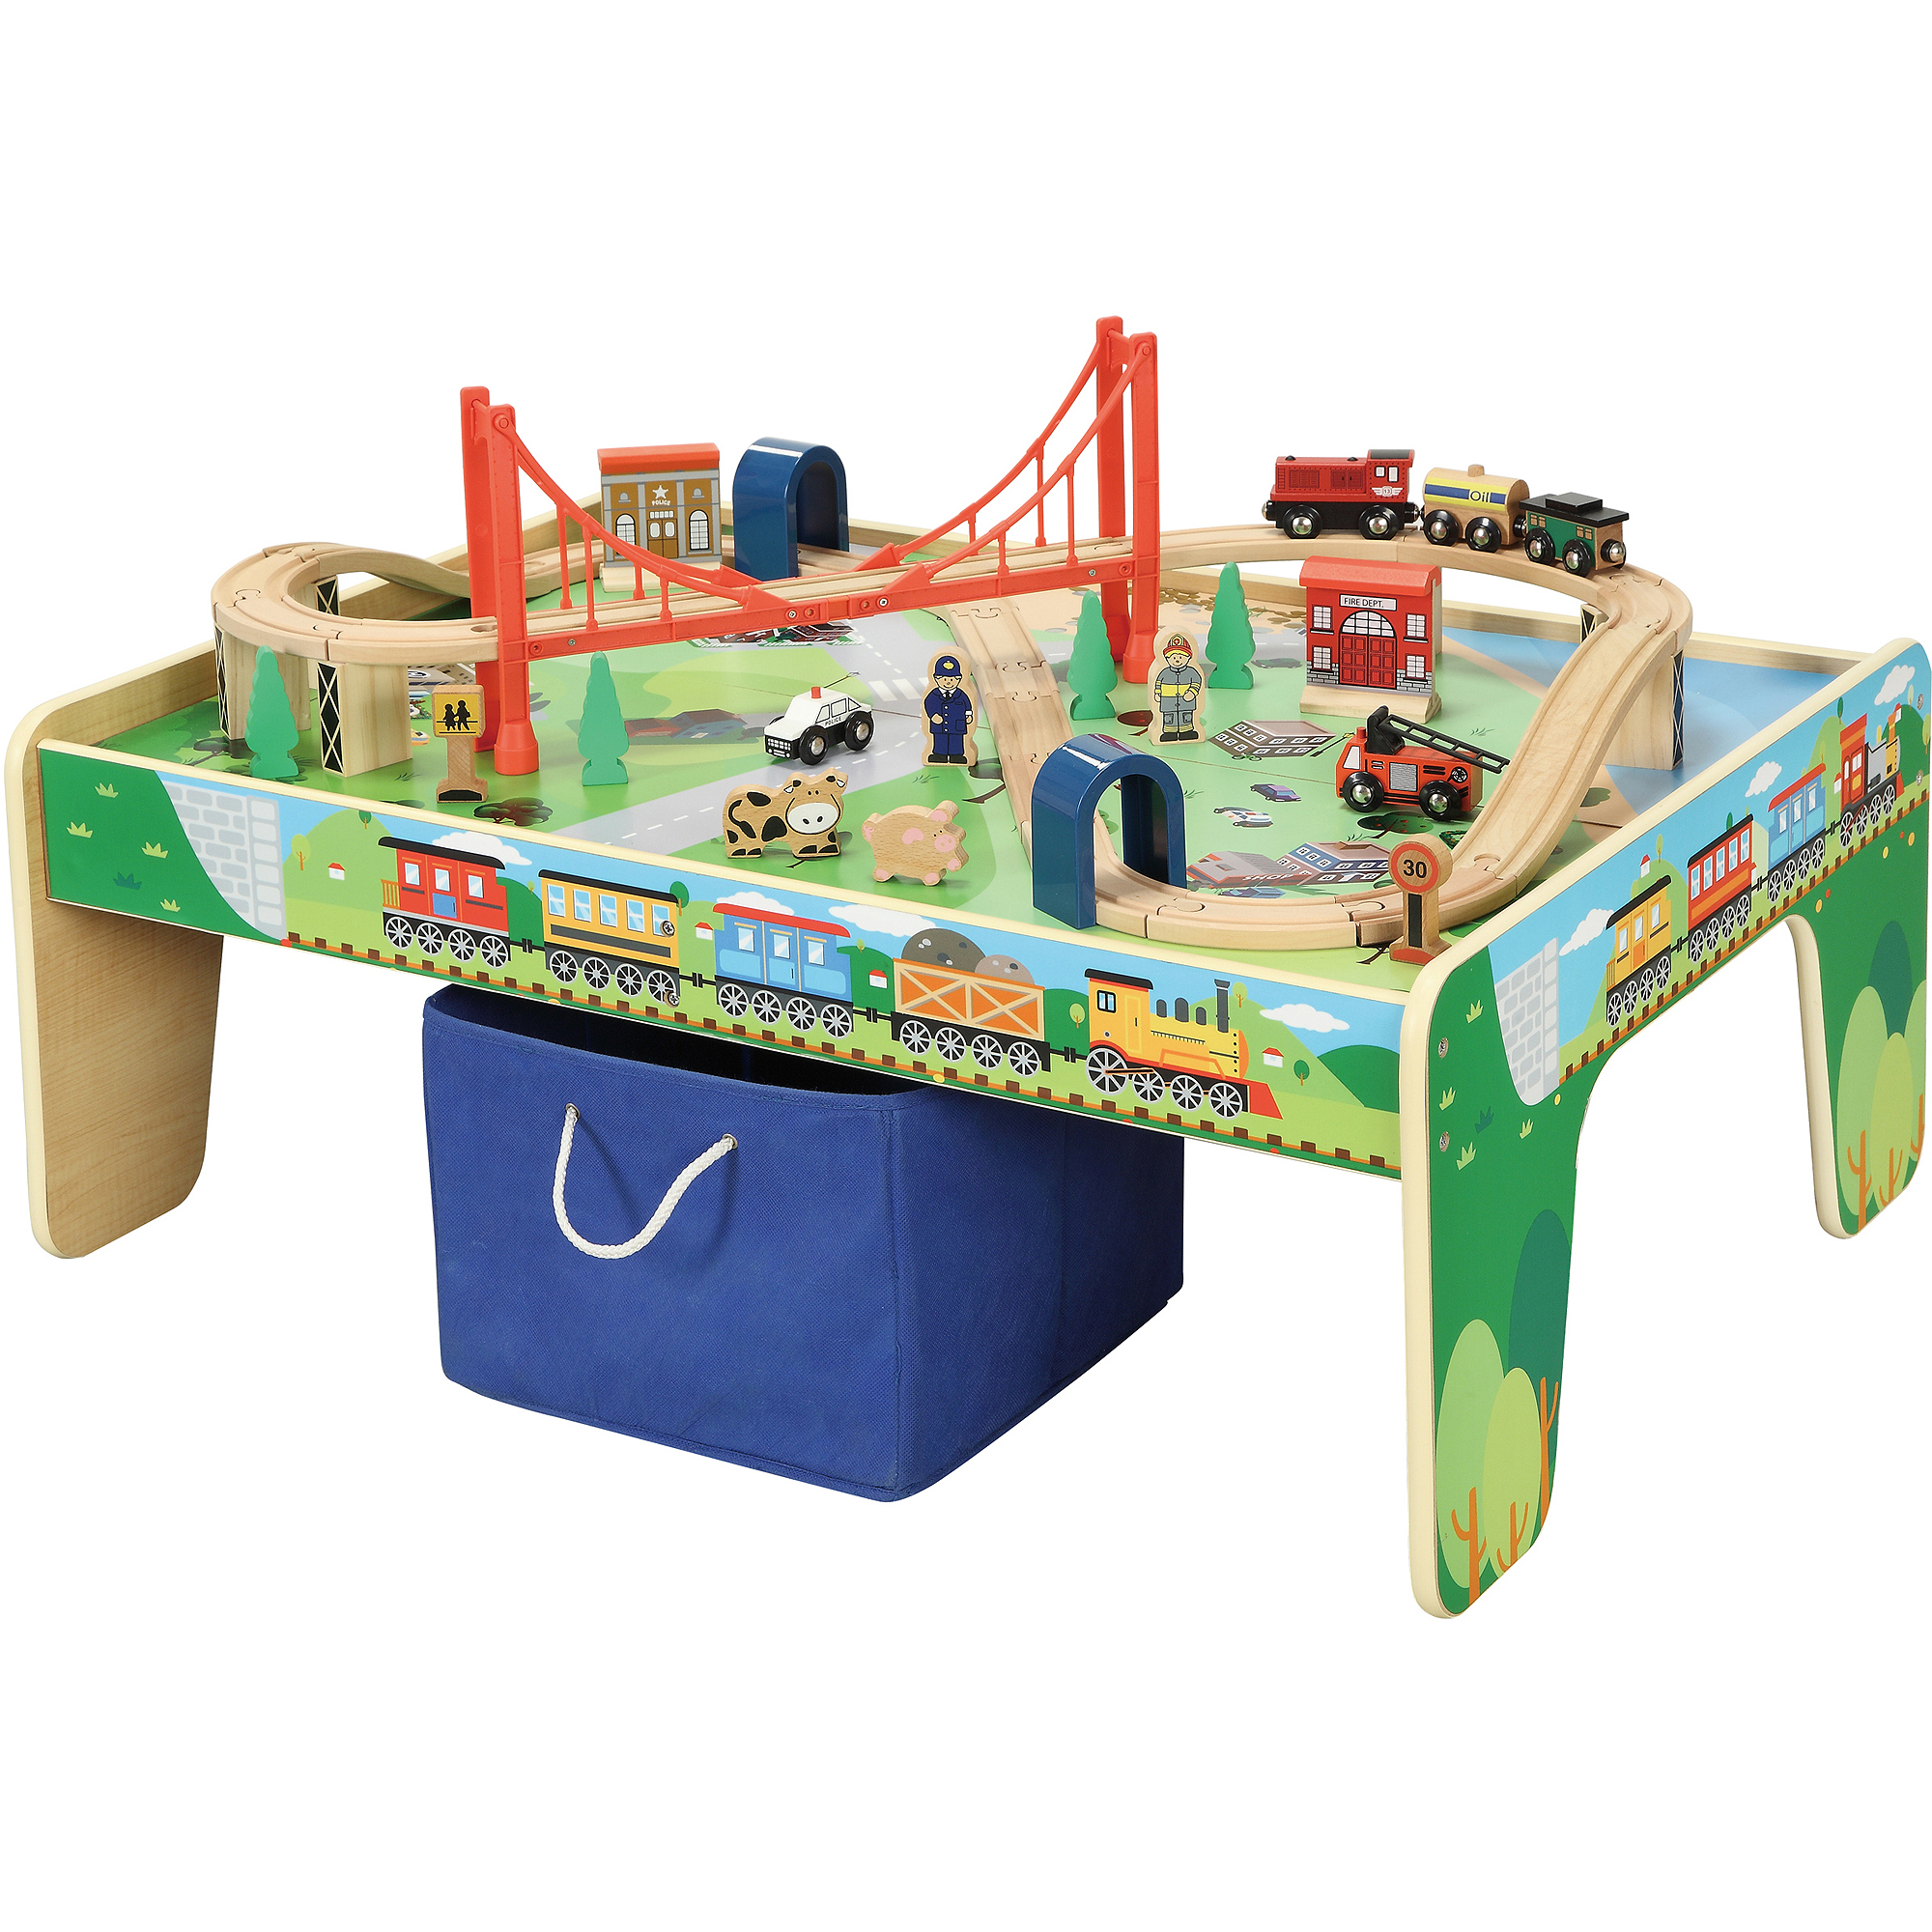 Wooden 50-Piece Train Set with Small Table Only At Walmart  sc 1 st  Walmart & Wooden 50-Piece Train Set with Small Table Only At Walmart - Walmart.com